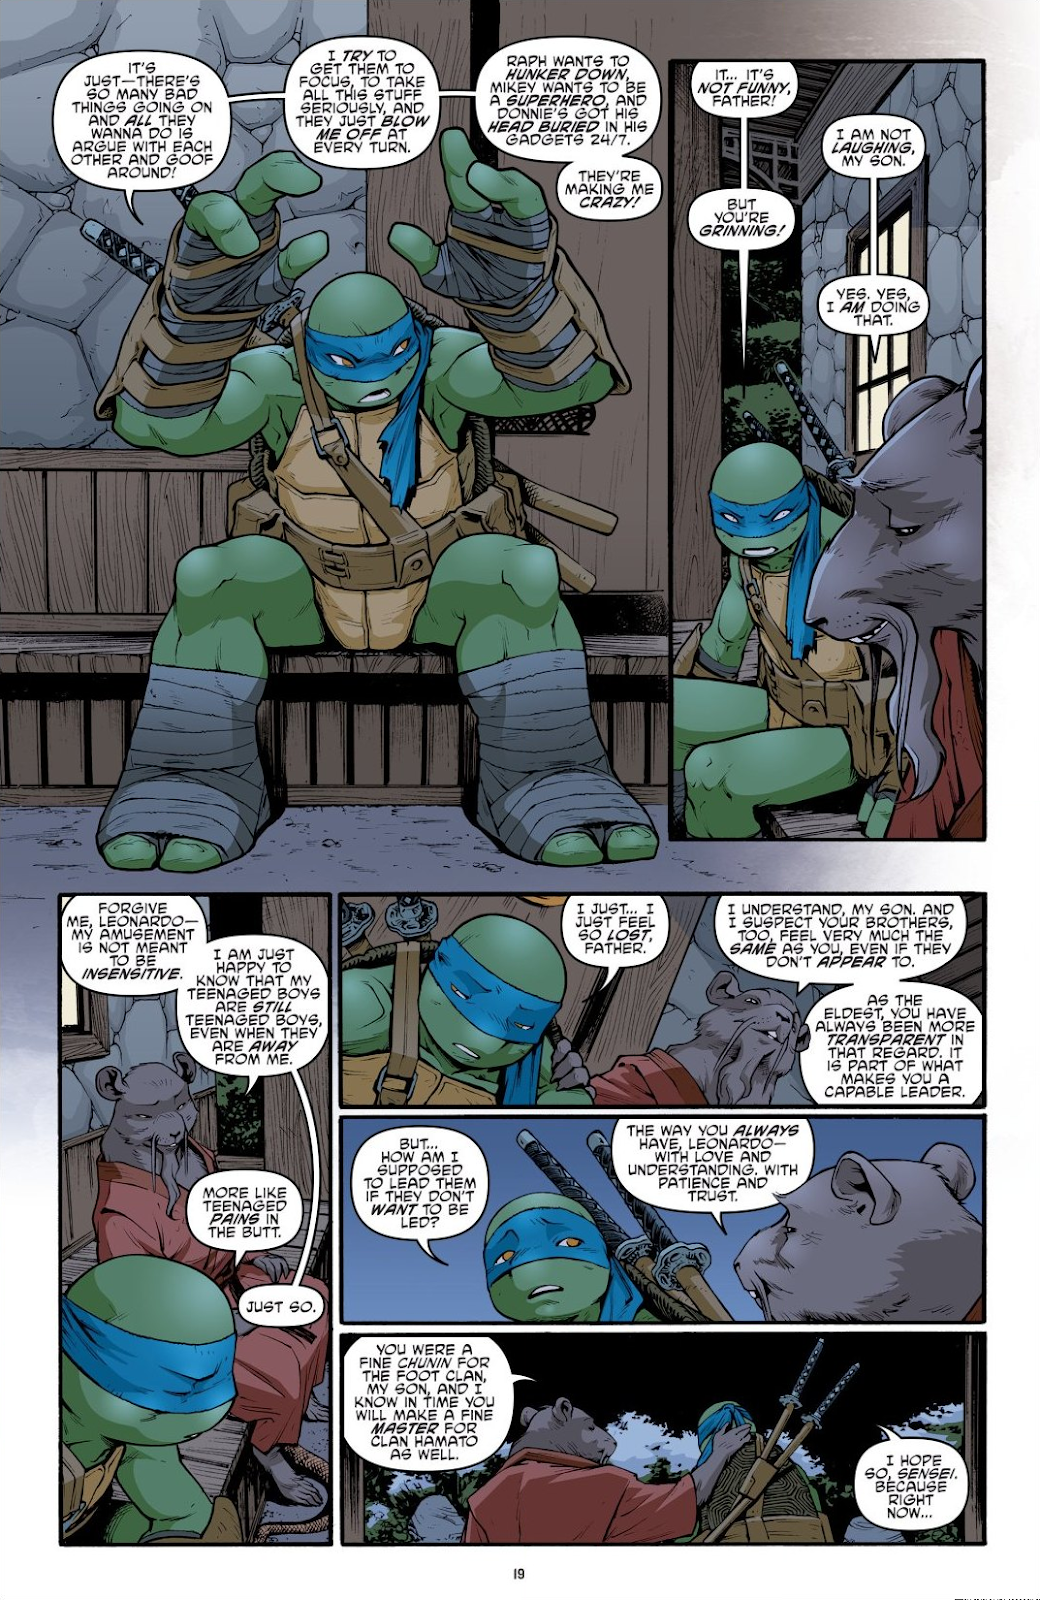 Read online Teenage Mutant Ninja Turtles: The IDW Collection comic -  Issue # TPB 9 (Part 1) - 20